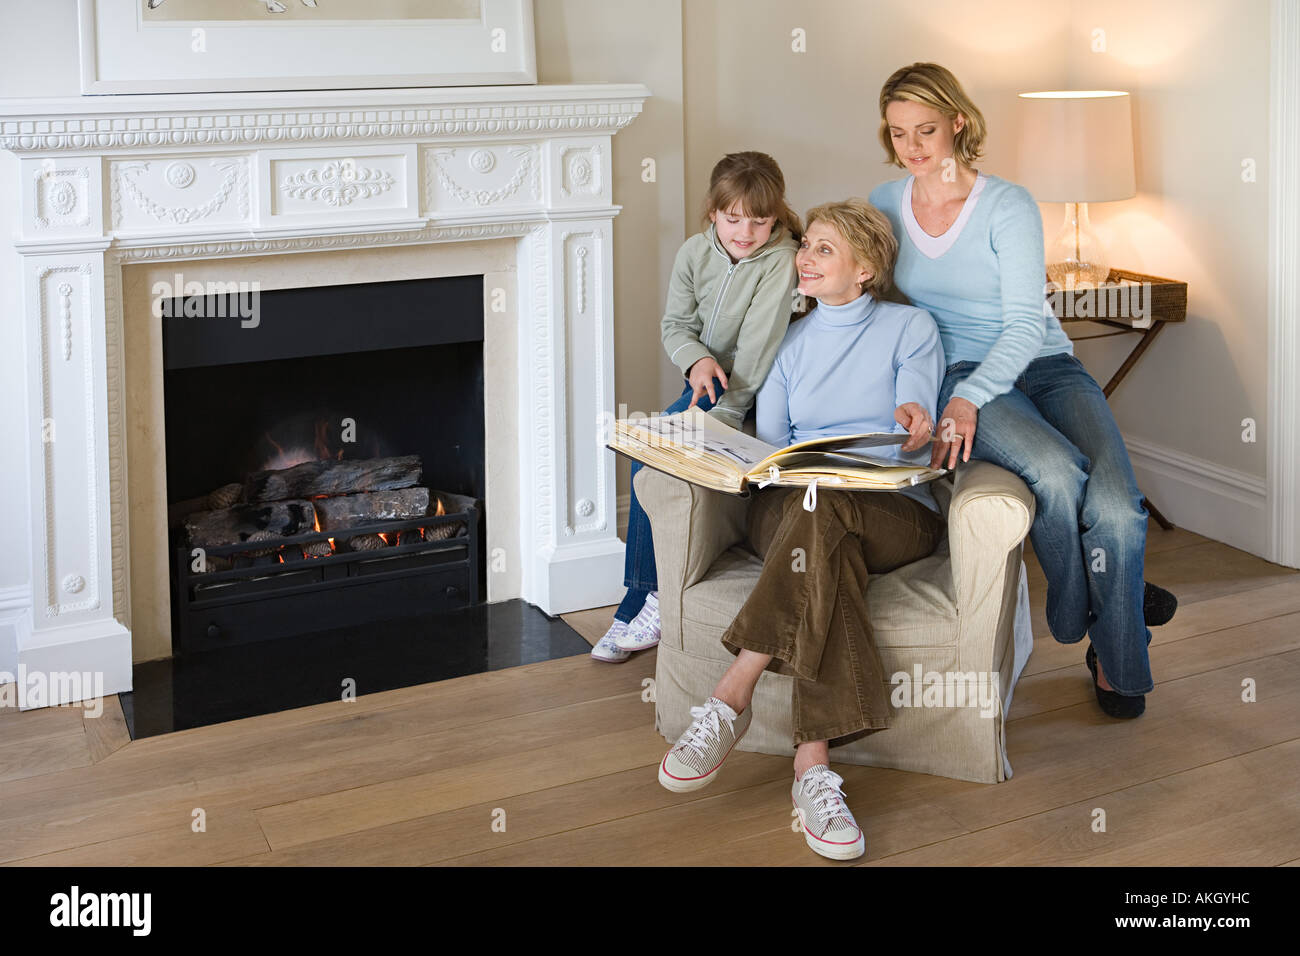 Female relatives looking at photograph album - Stock Image